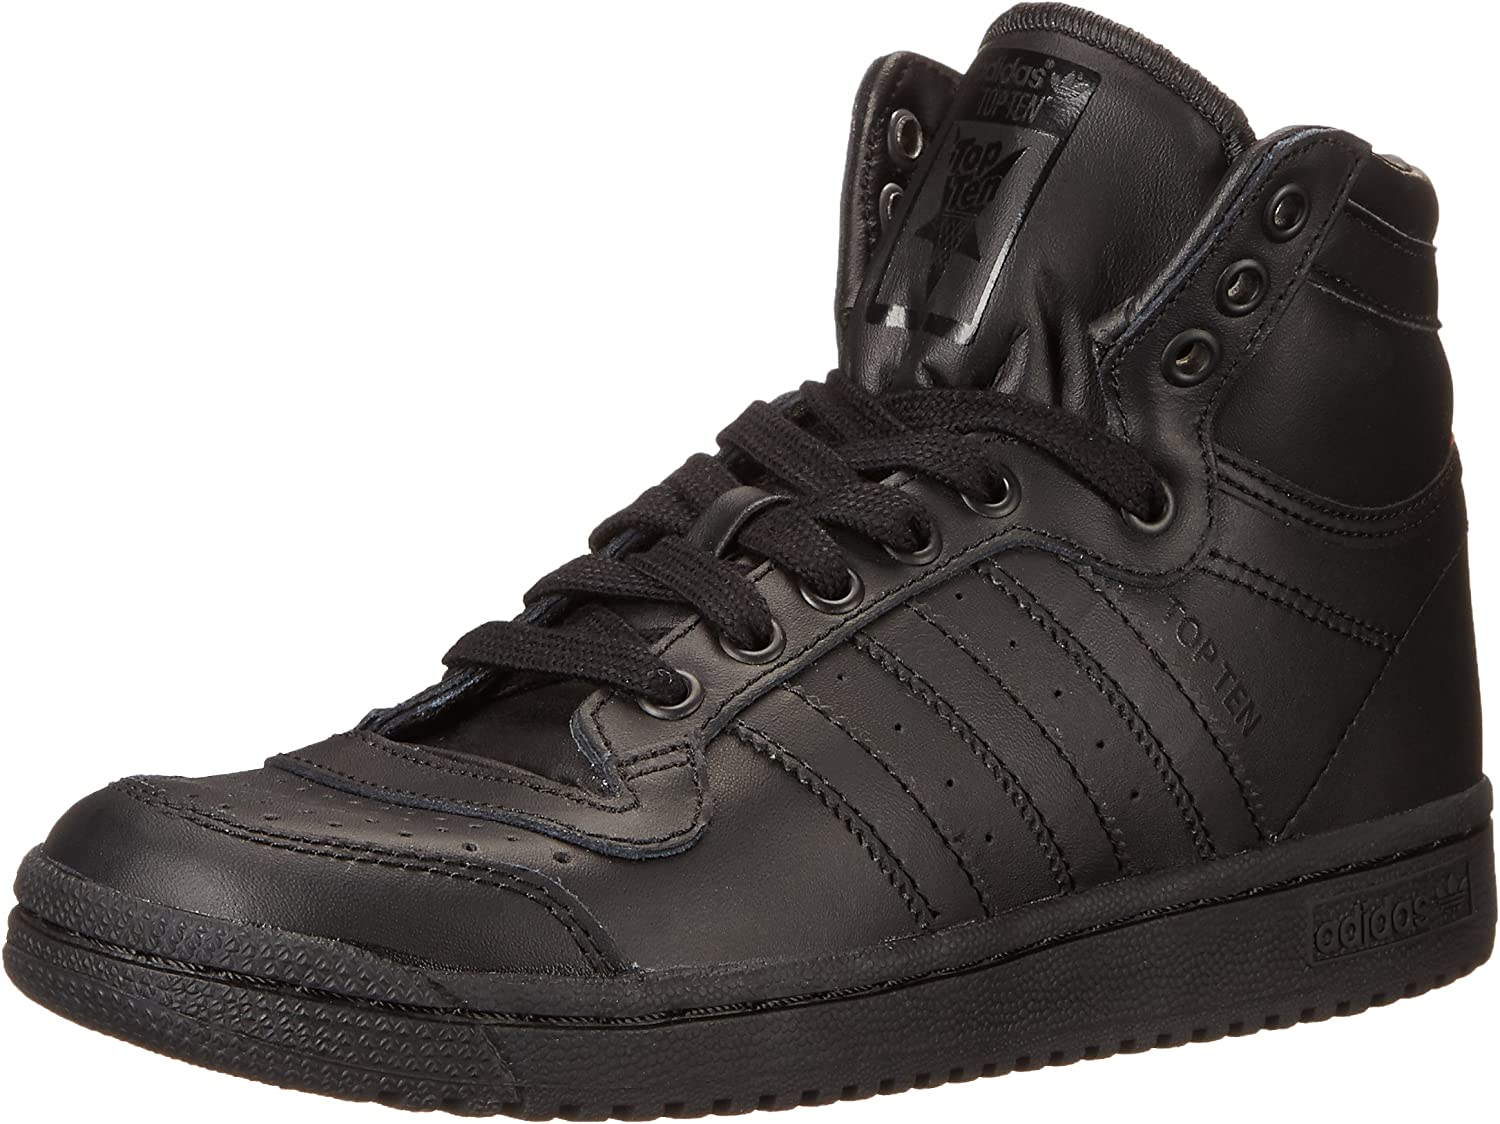 Adidas ORIGINALS Top Ten Hi J Basketball shoes (Big Kid)